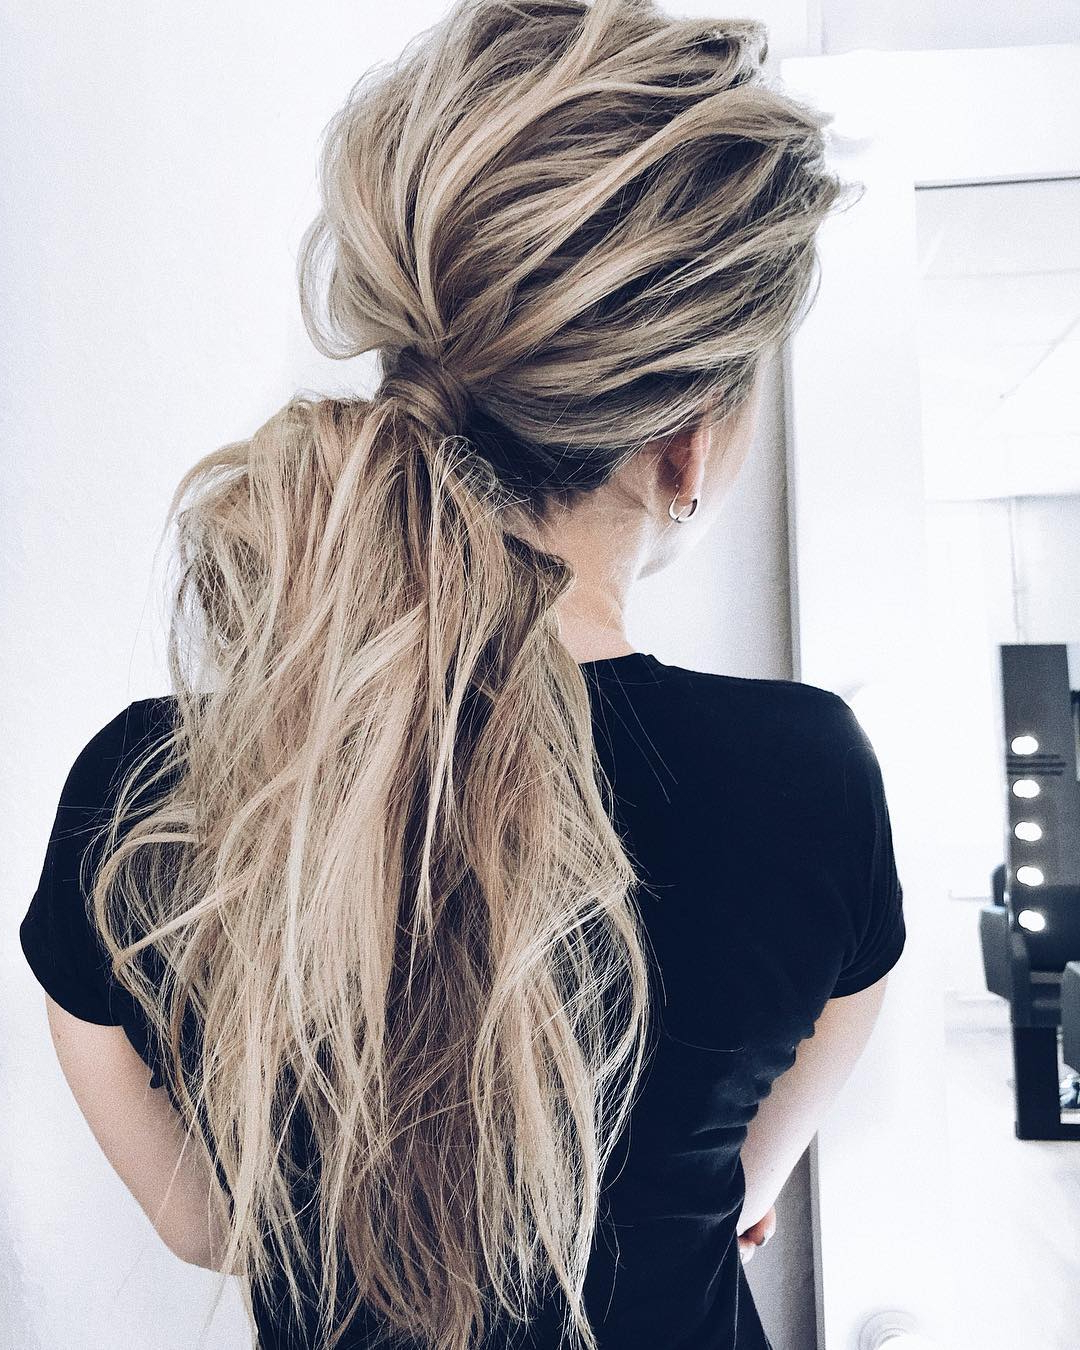 10 Creative Ponytail Hairstyles For Long Hair, Summer Hairstyle Inside Best And Newest Chic Ponytail Hairstyles Ponytail Hairstyles (View 5 of 20)